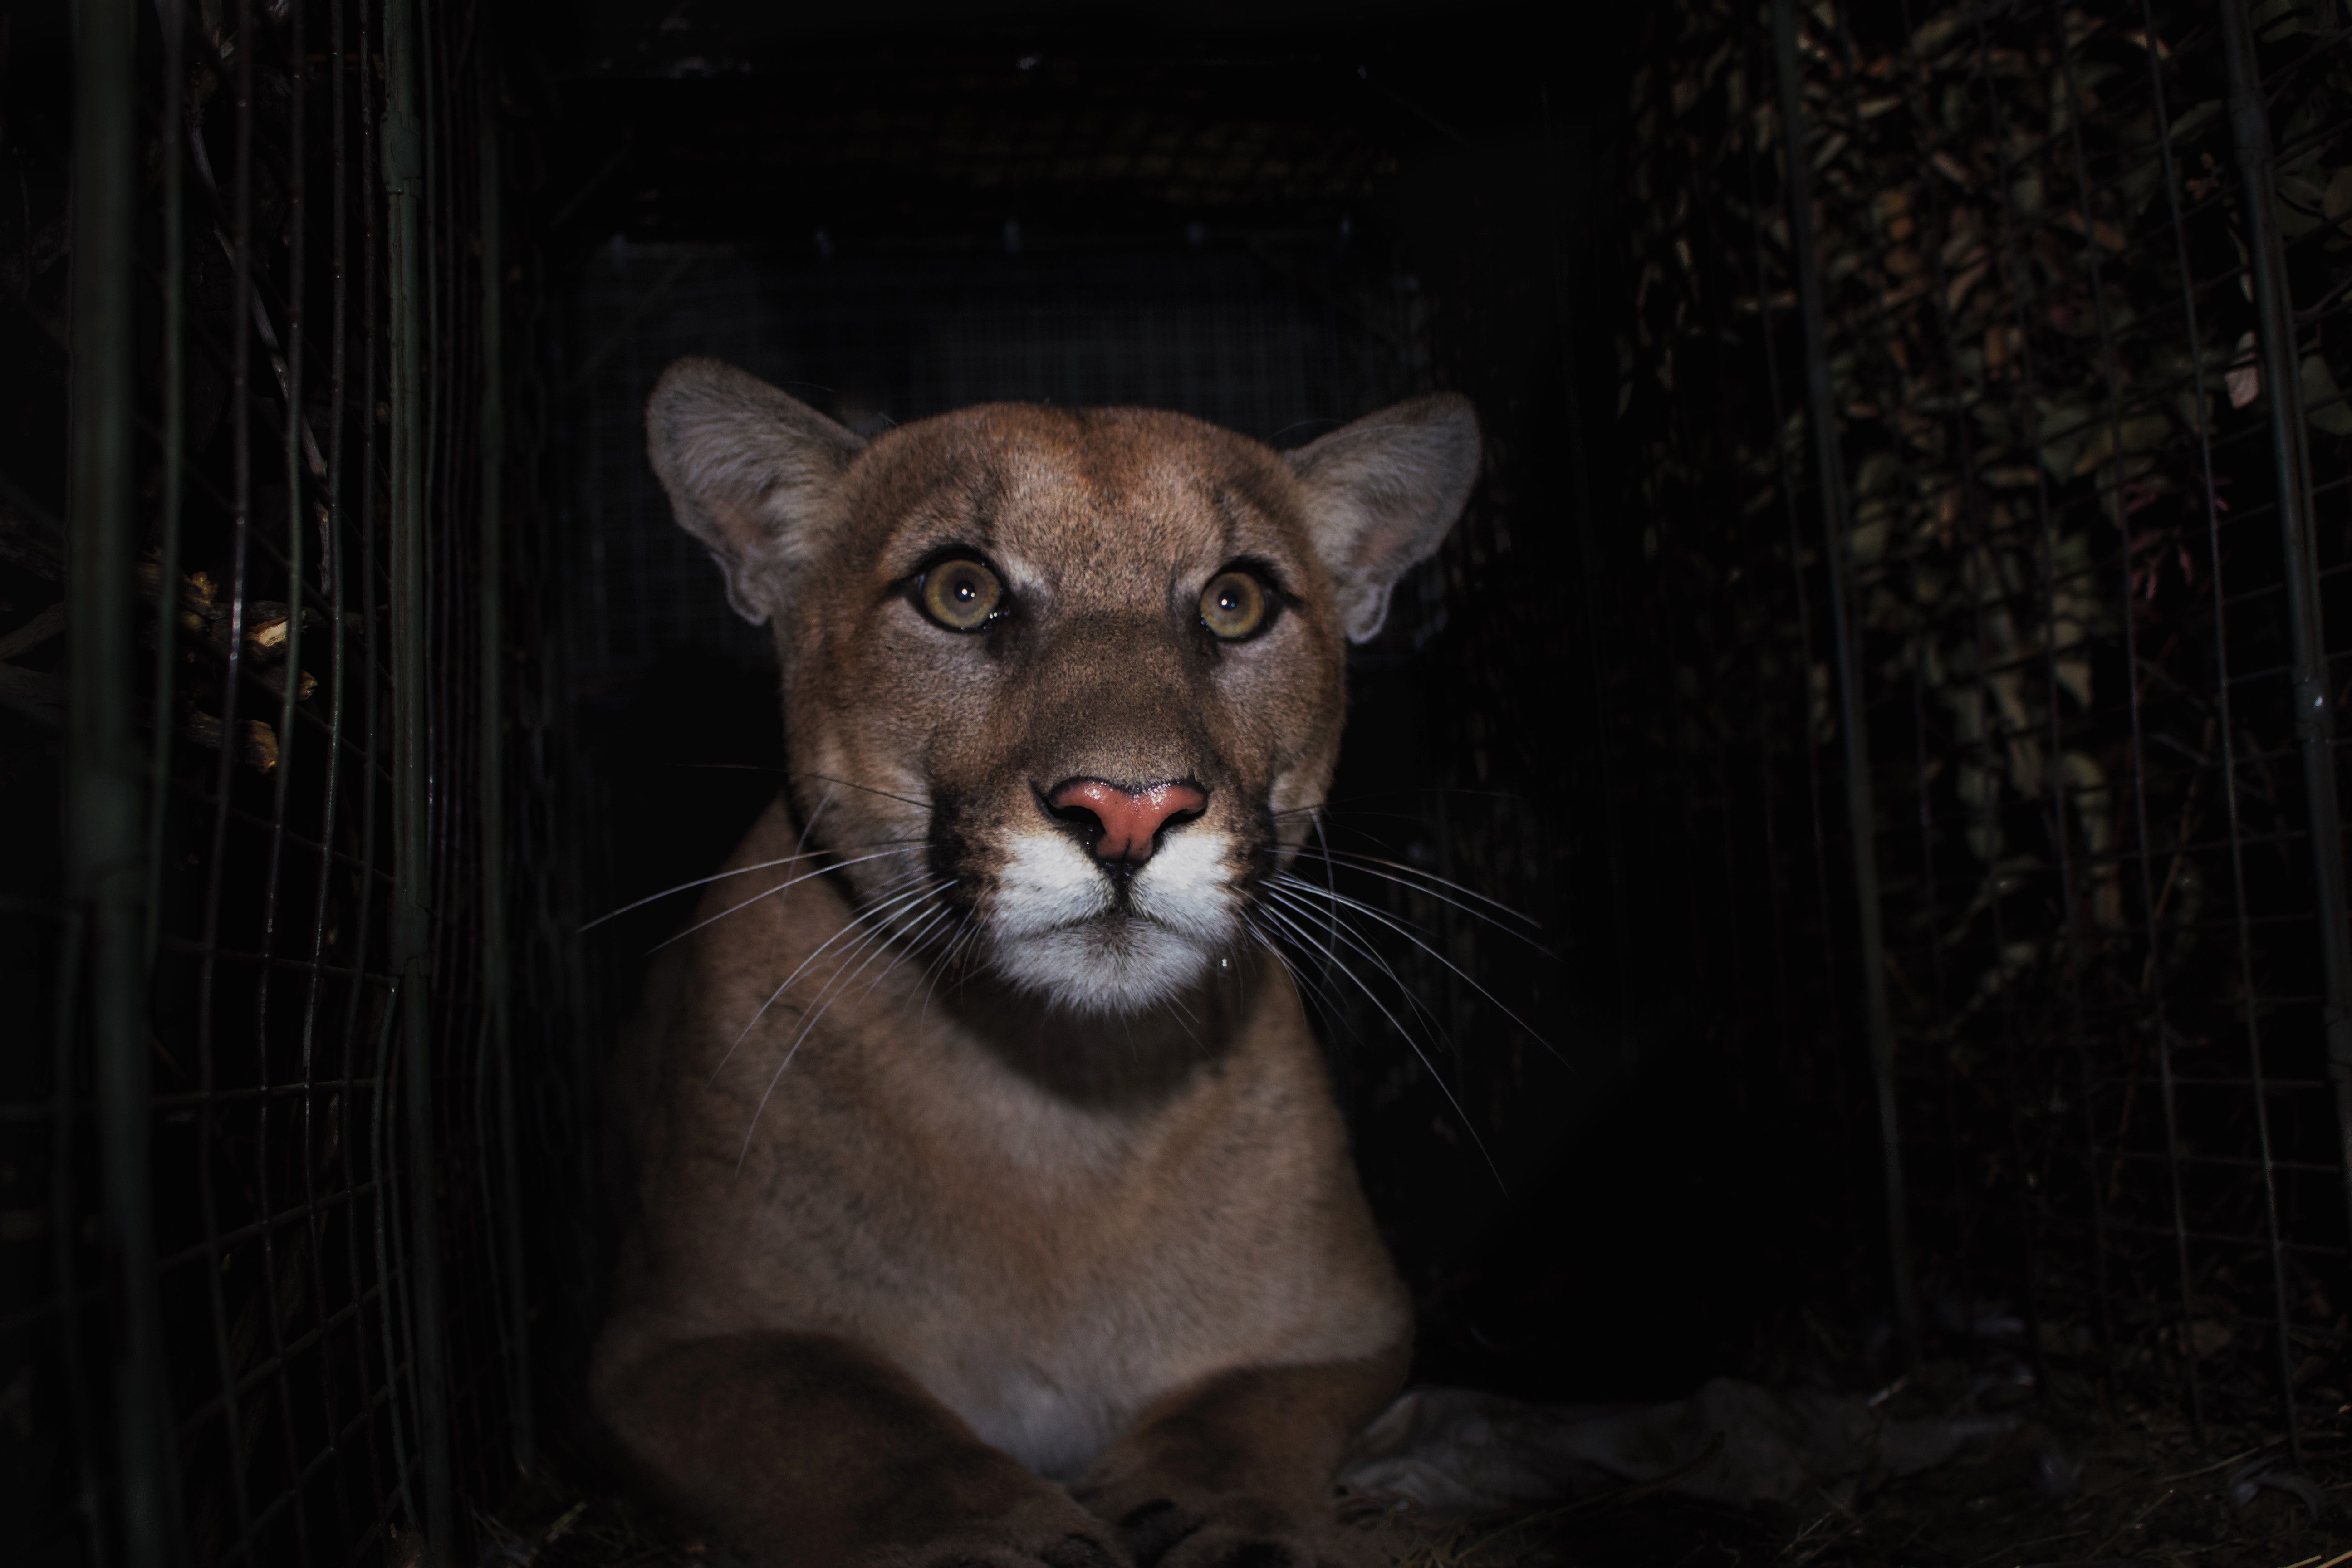 California must act to protect mountain lions